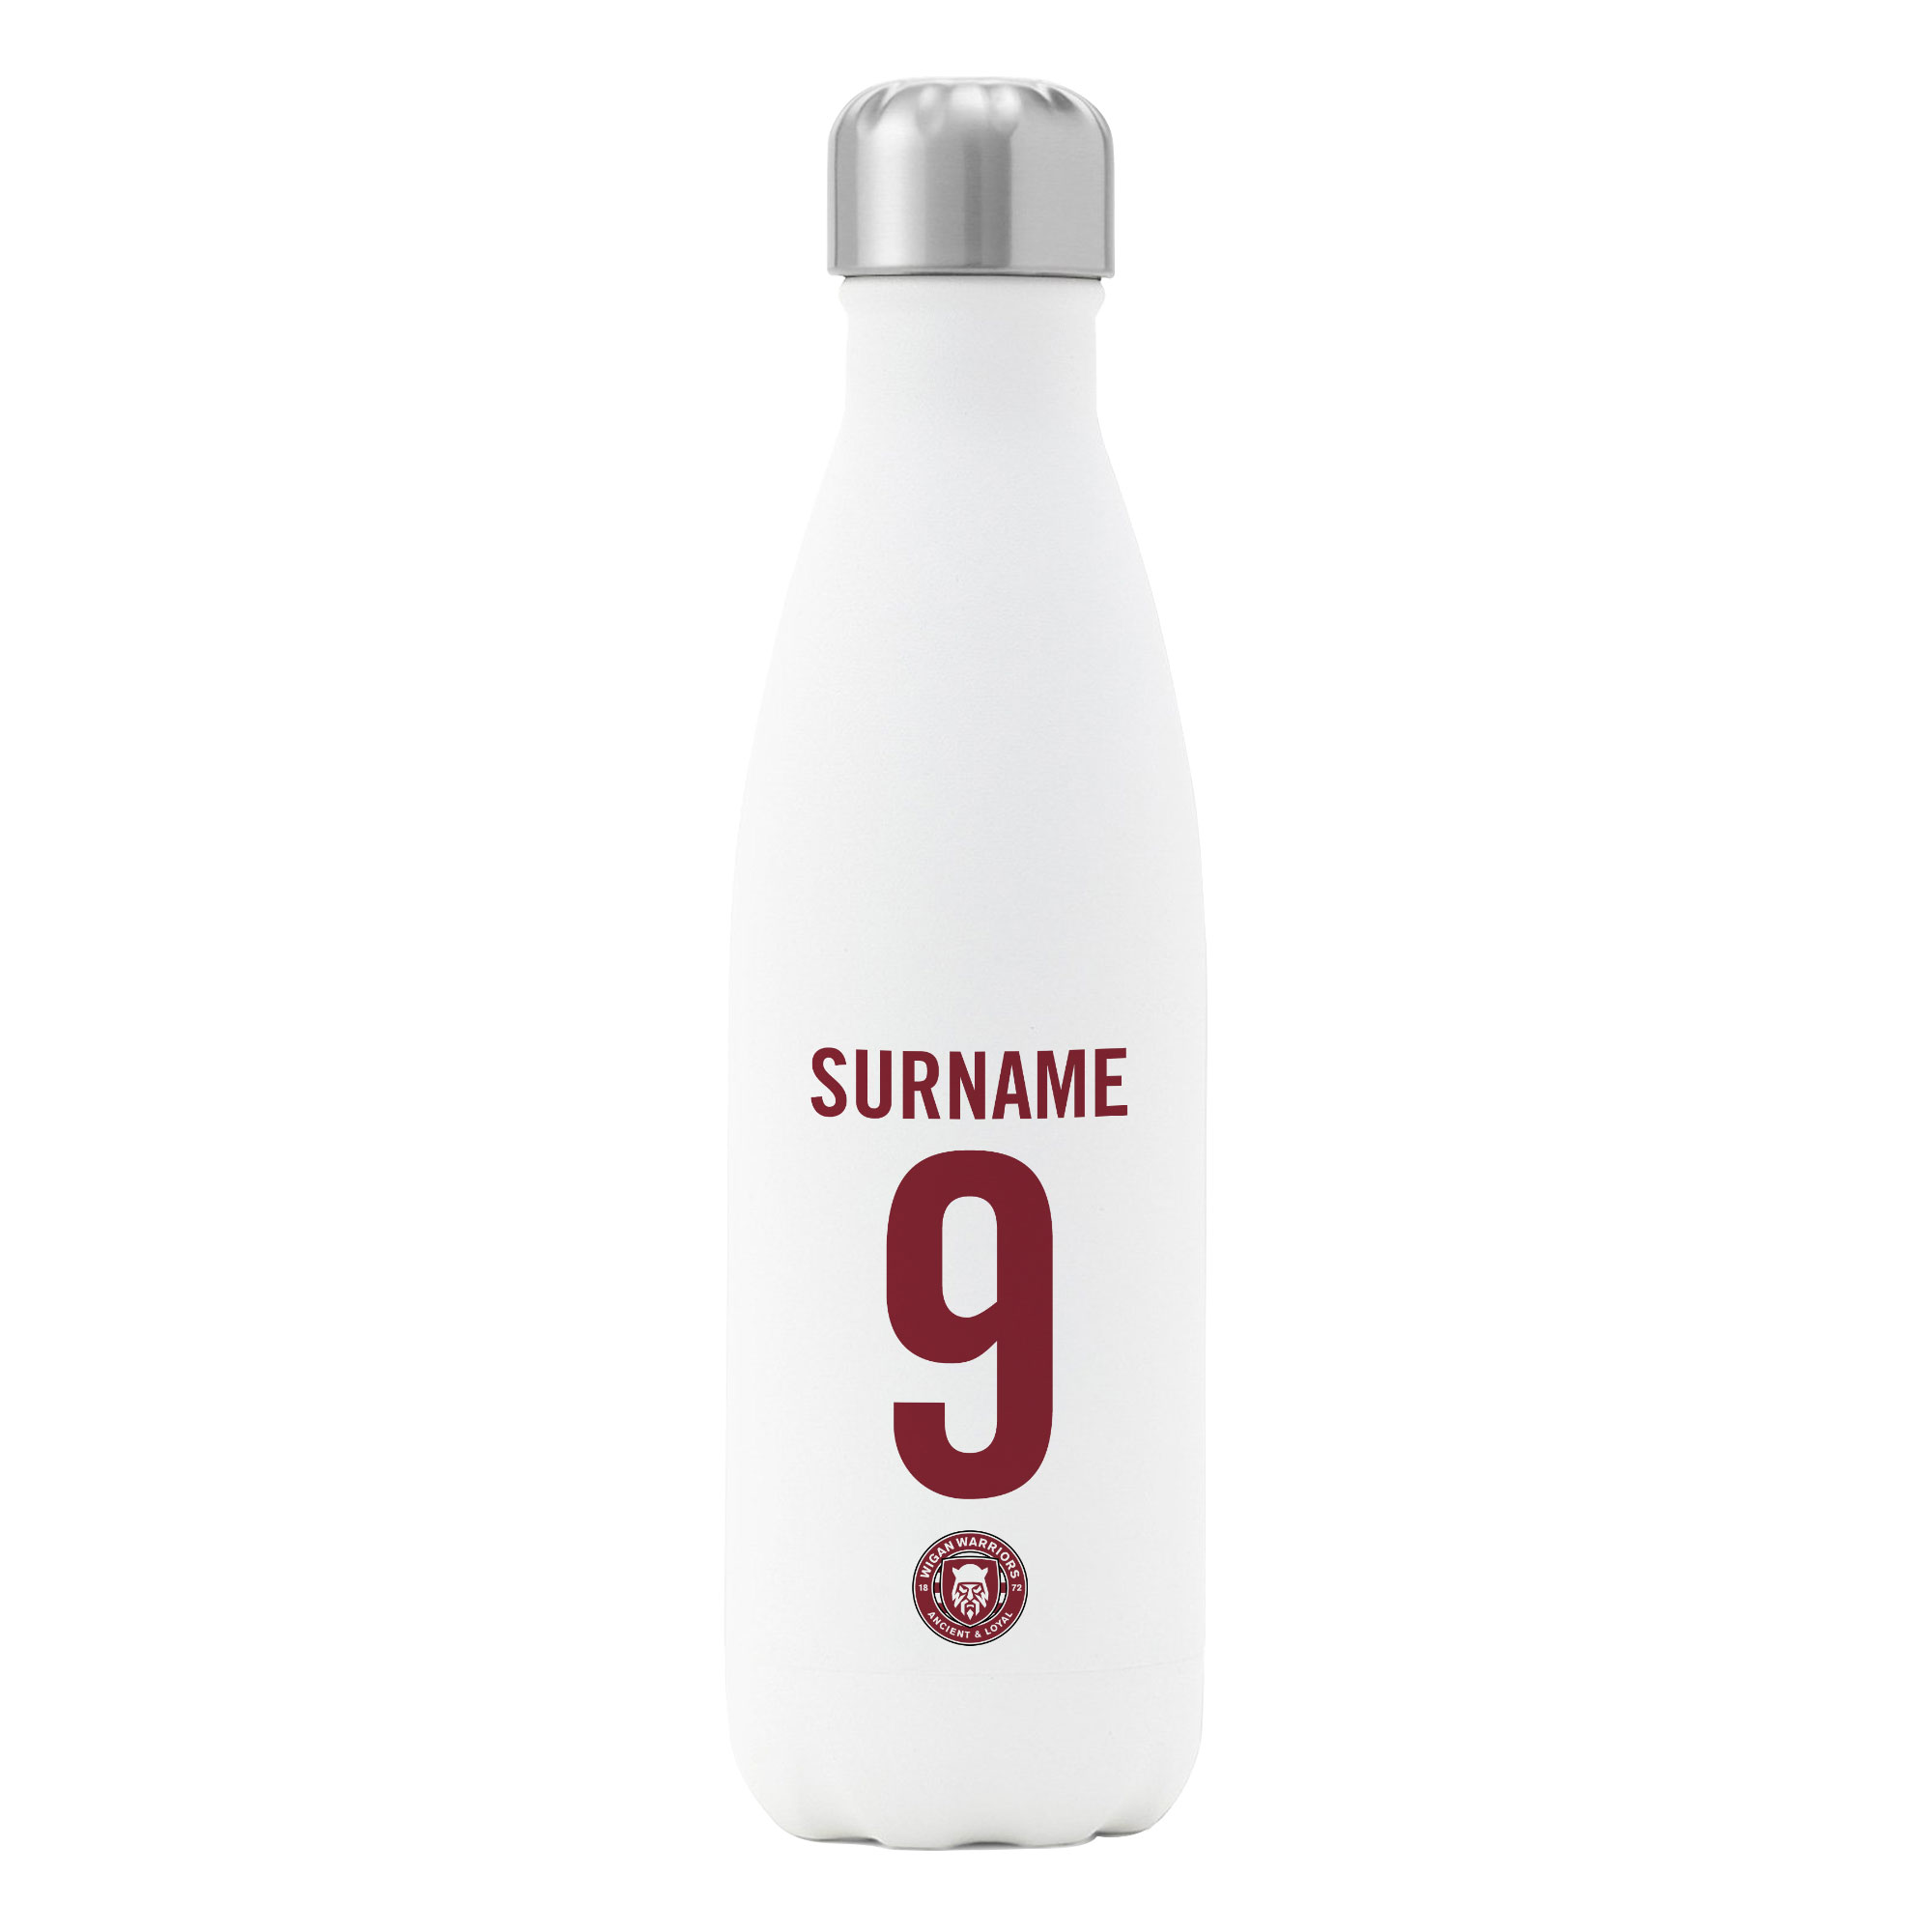 Wigan Warriors Back of Shirt Insulated Water Bottle - White